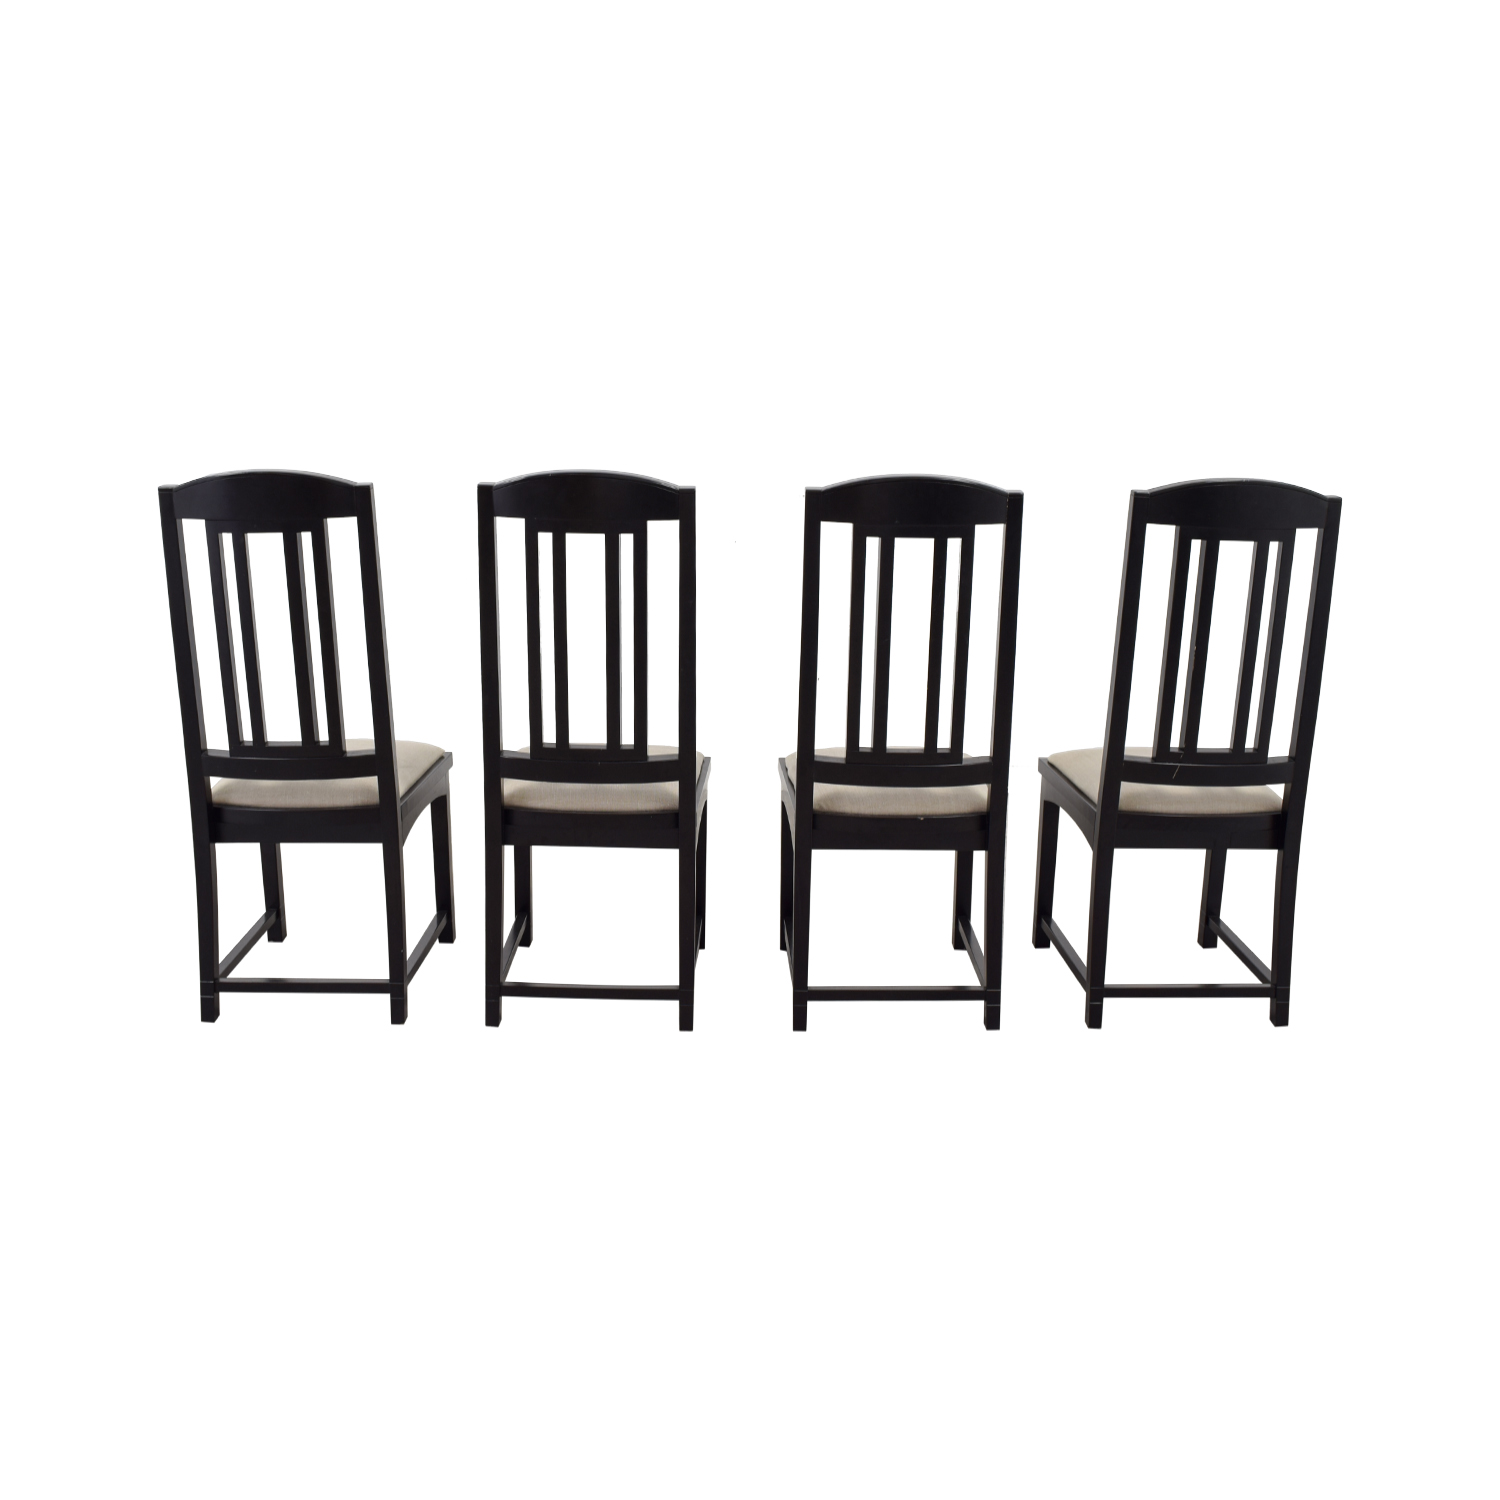 PACE Collection PACE Collection Black Dining Chairs Chairs